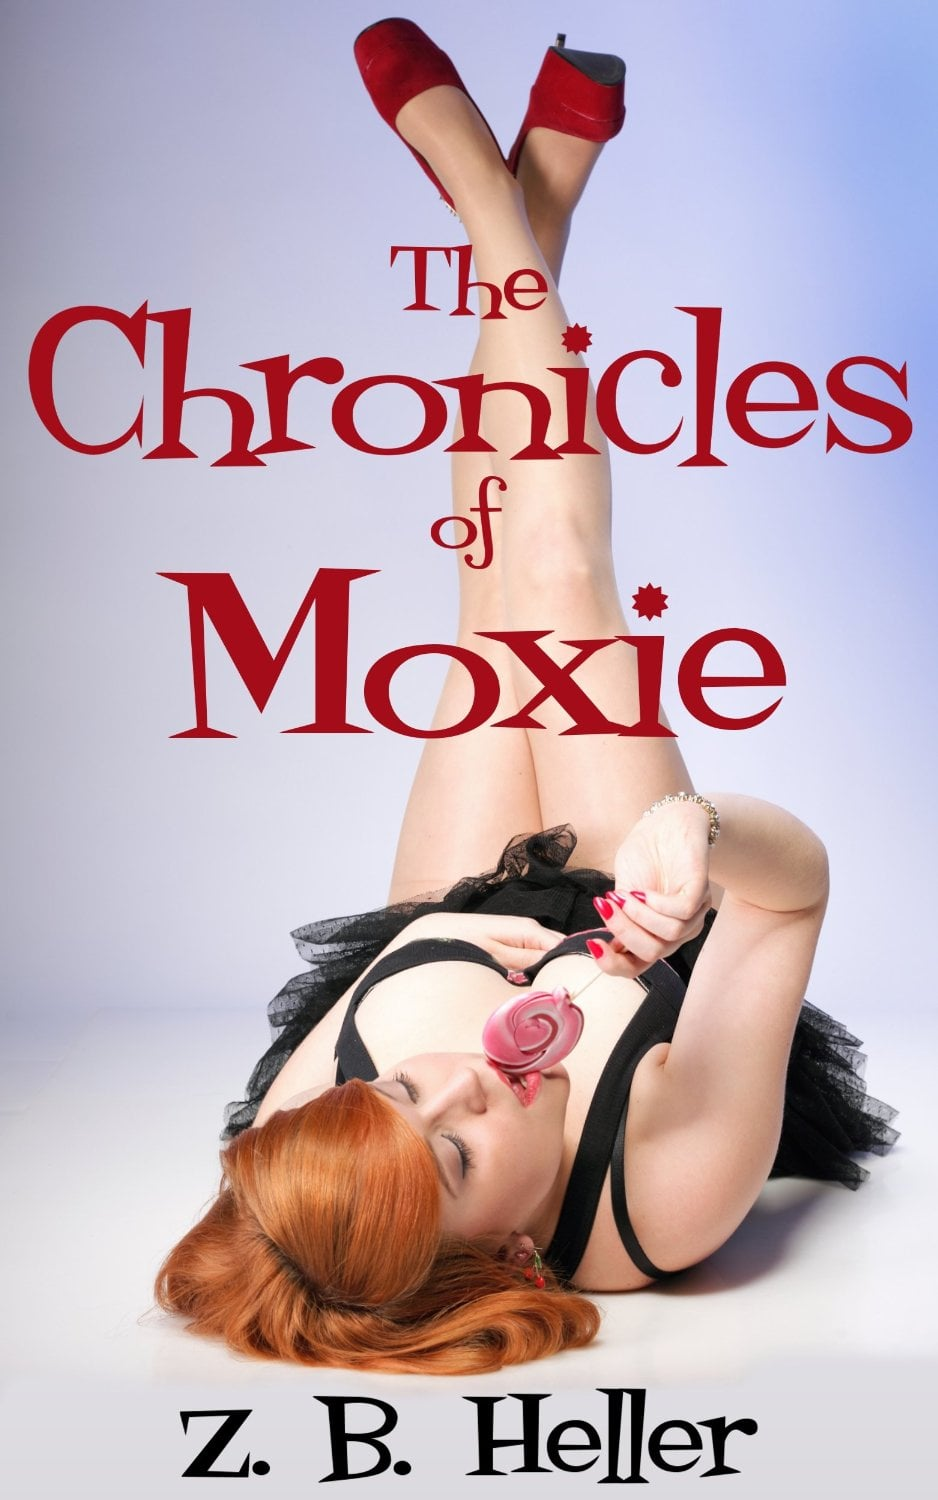 The Chronicles of Moxie by Z.B. Heller